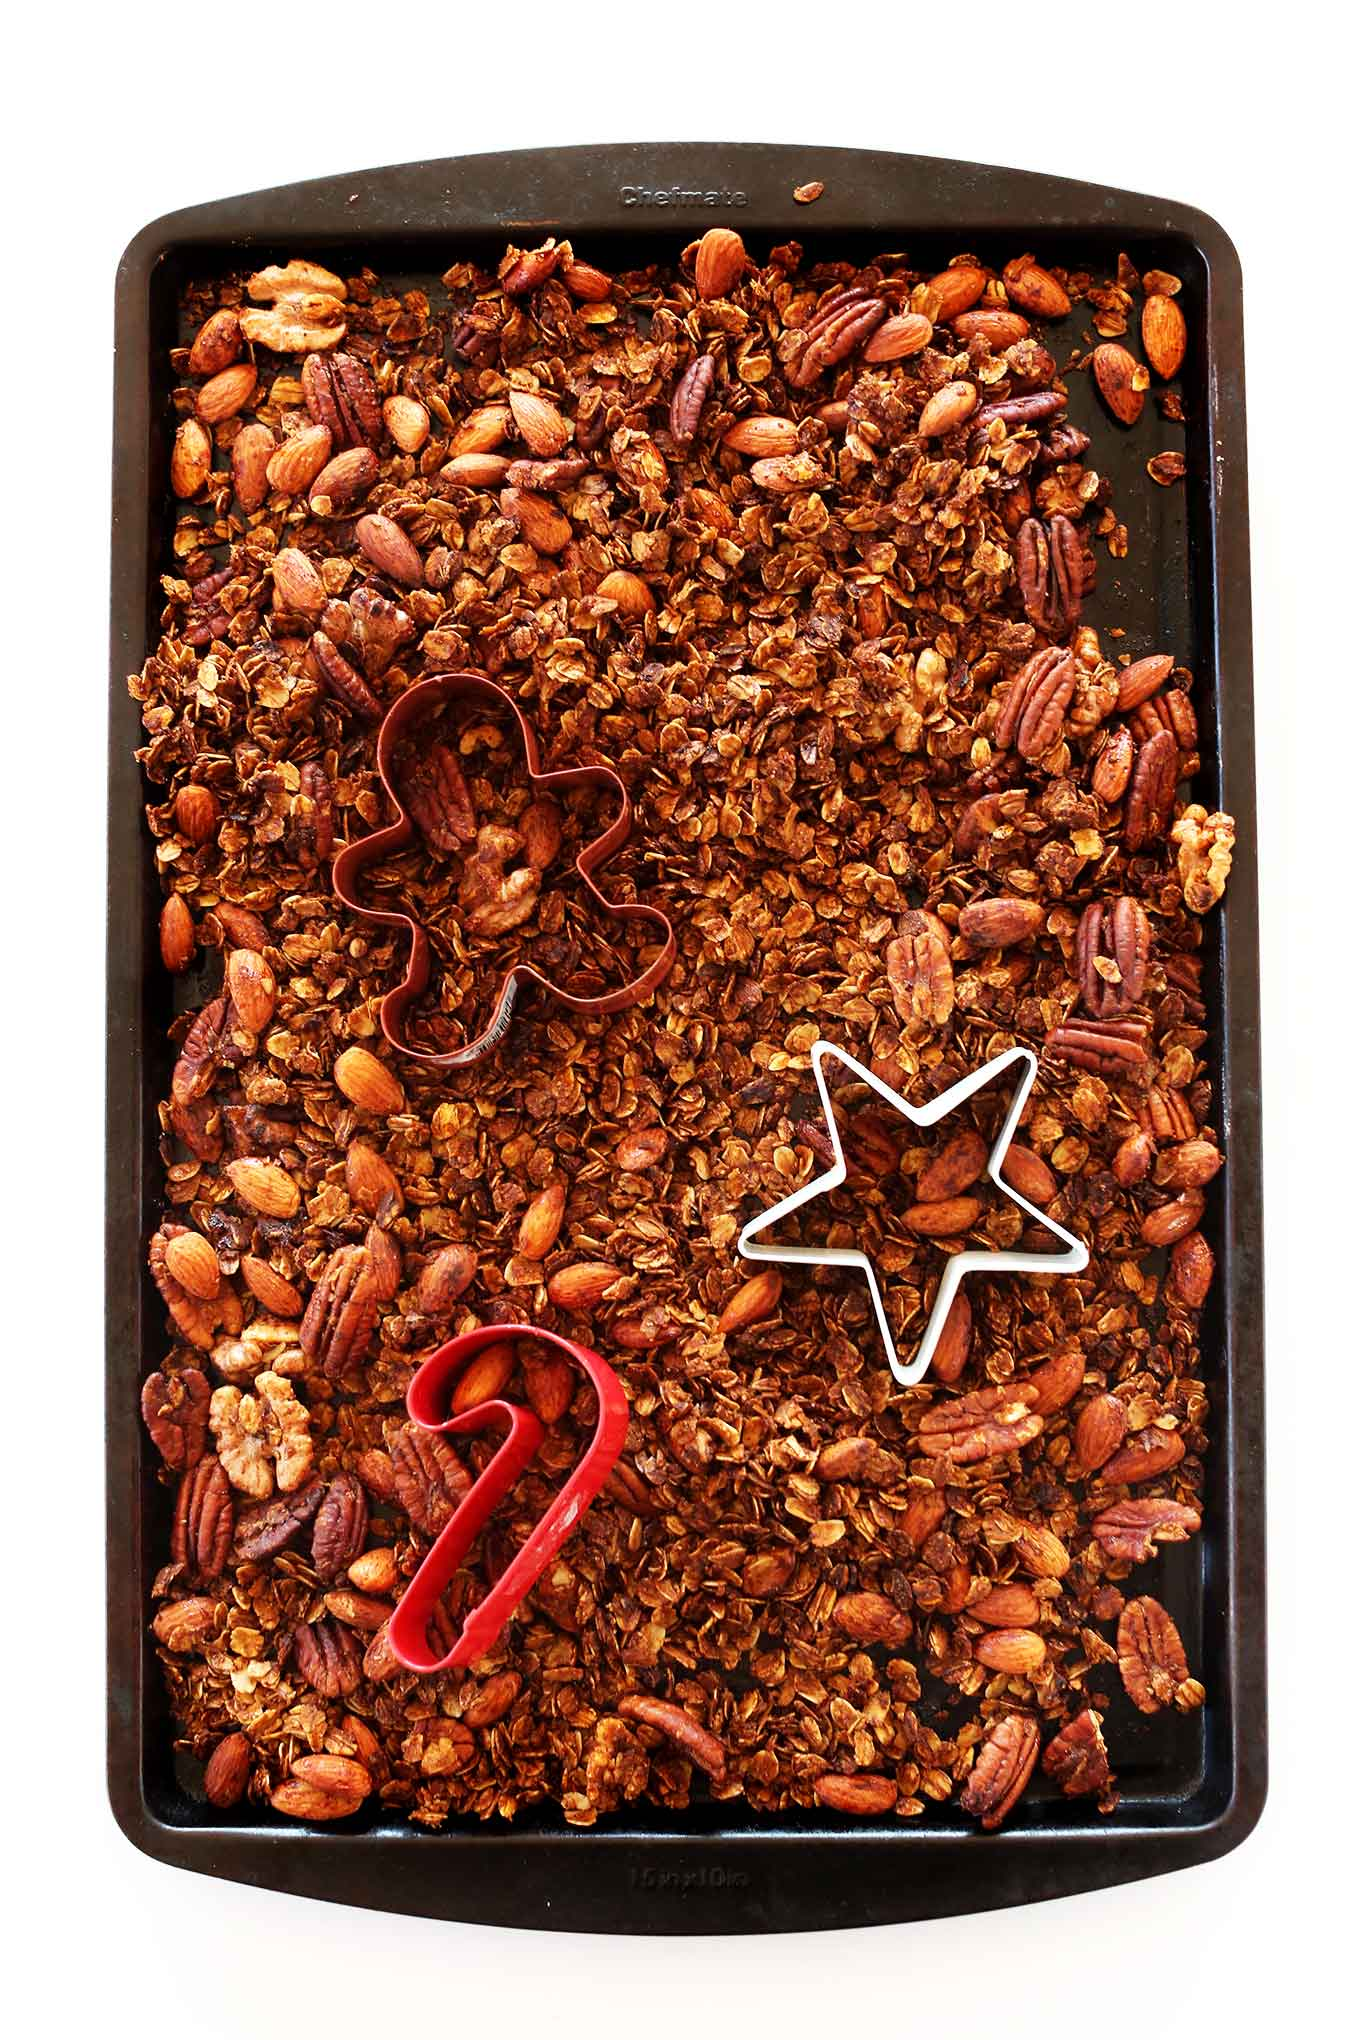 Tray of our crunchy and sweet Gingerbread Granola recipe